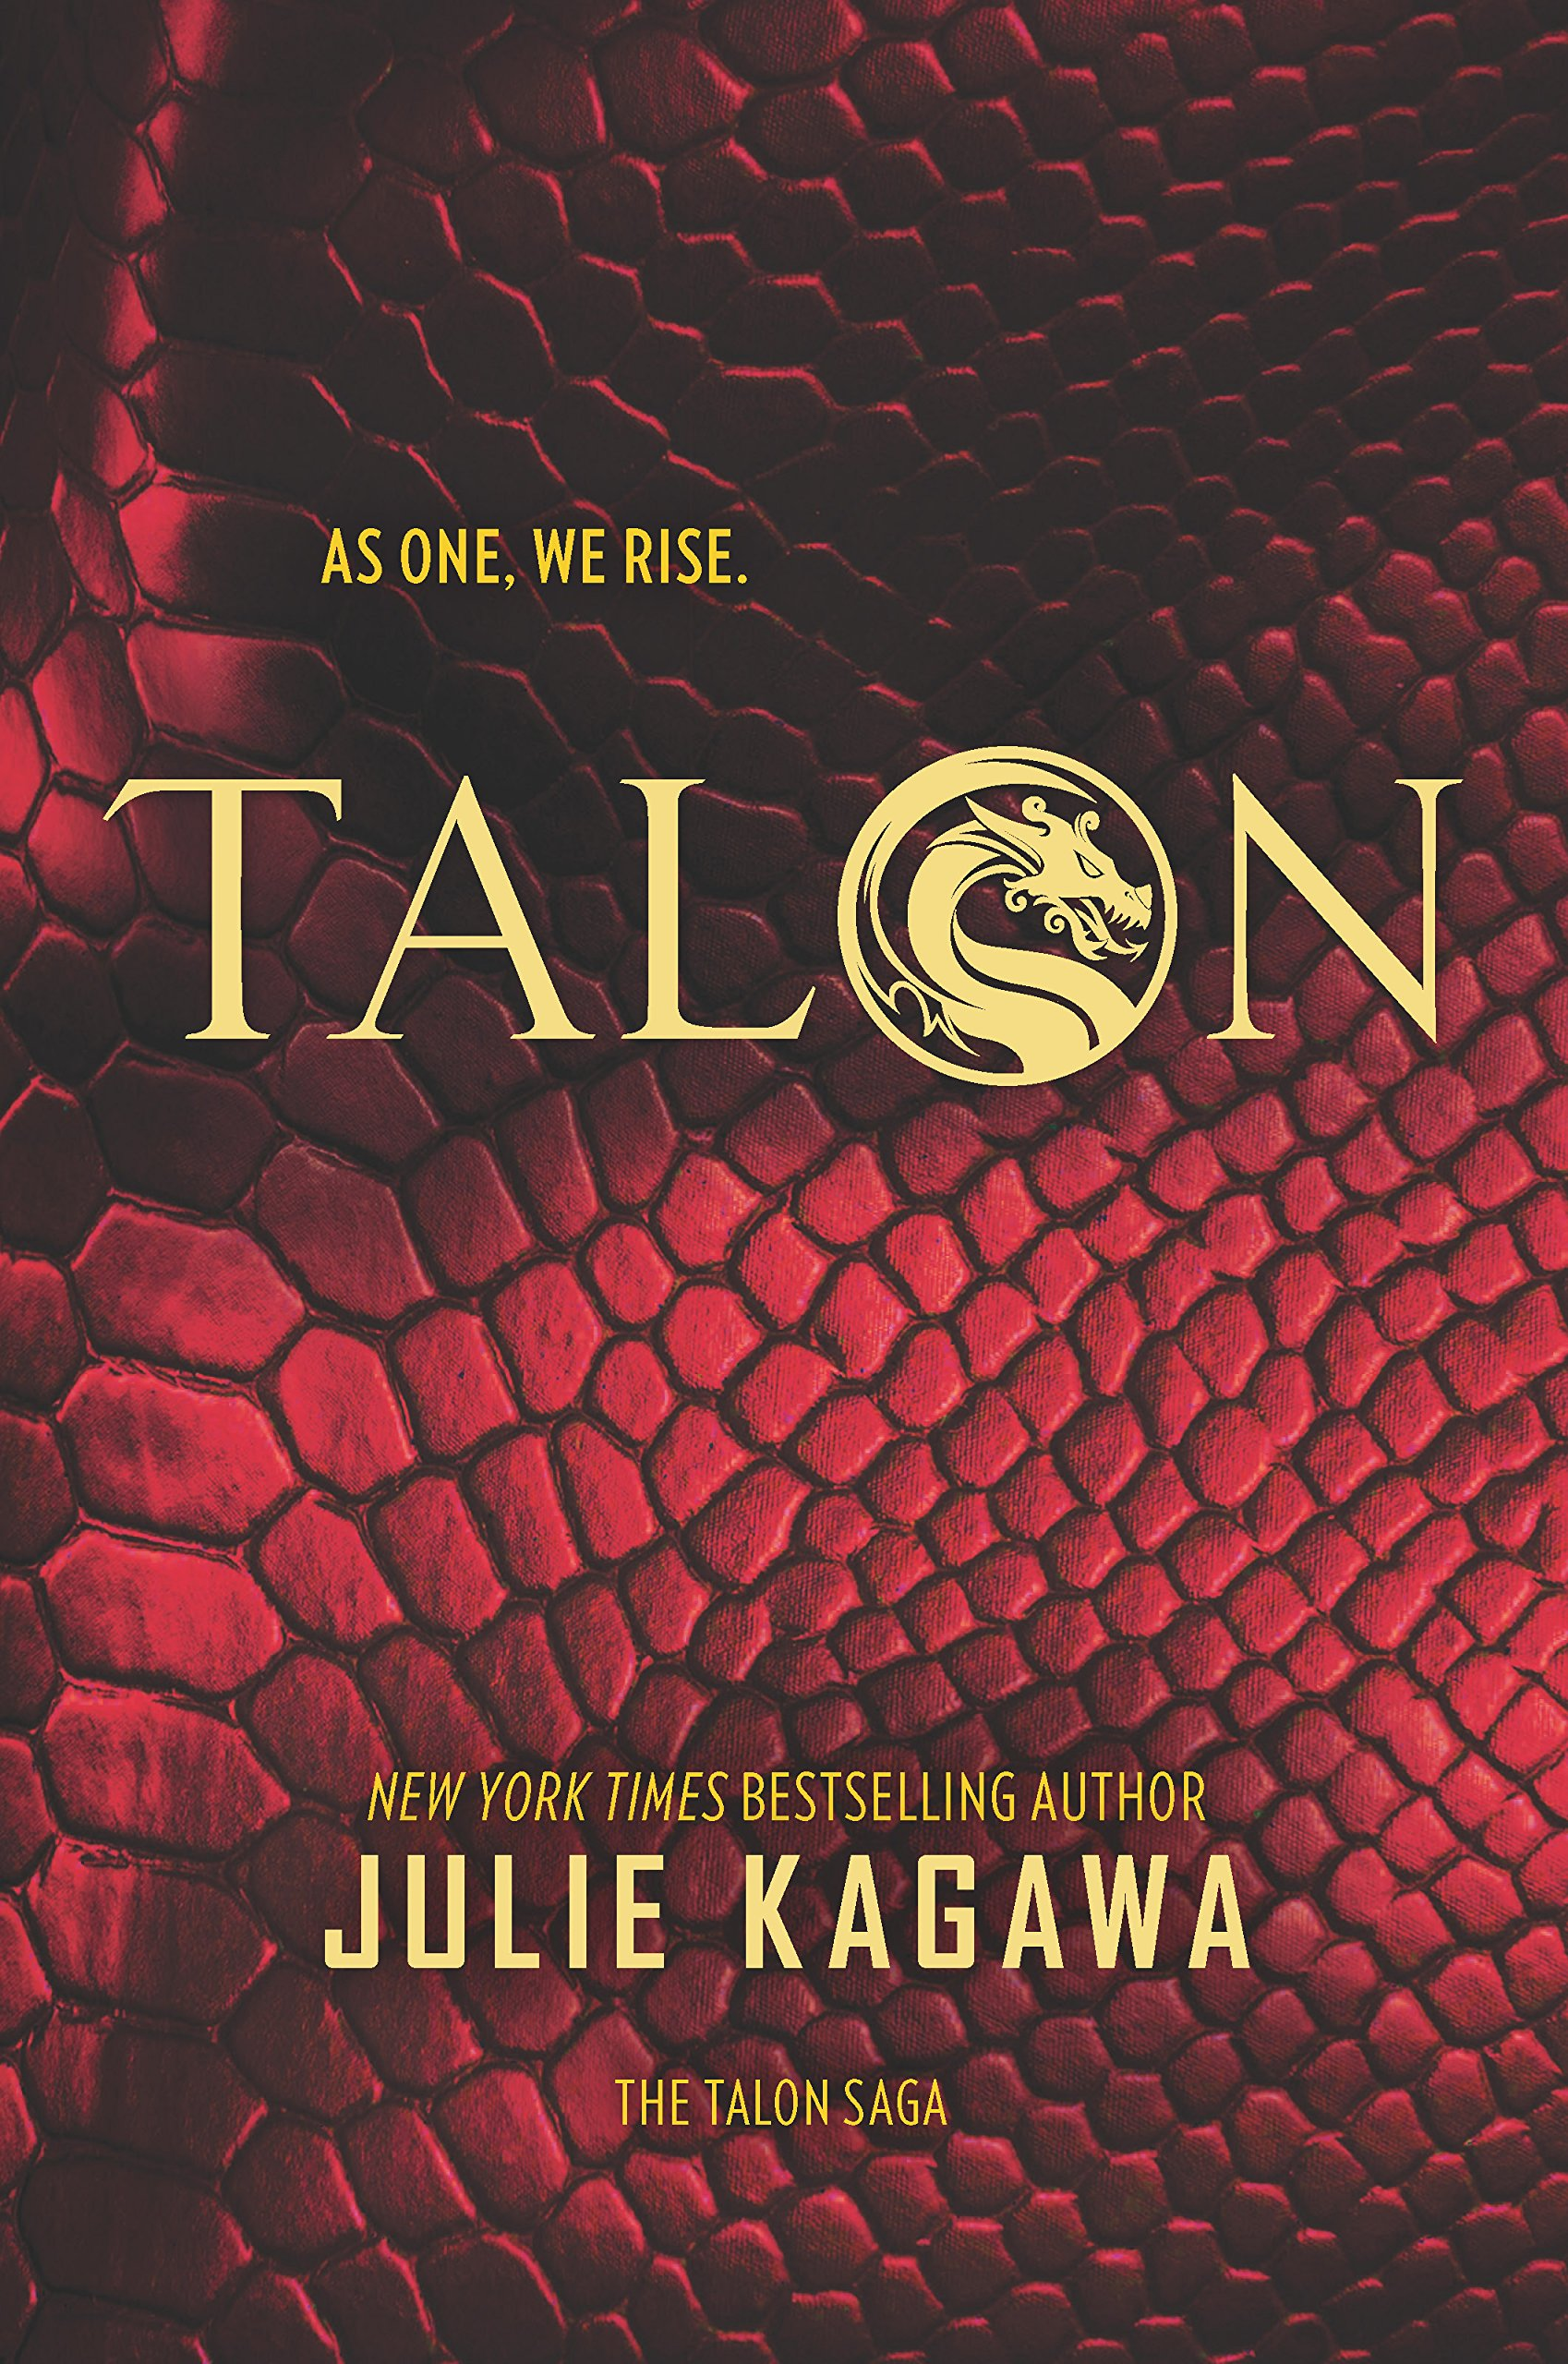 Image result for talon book